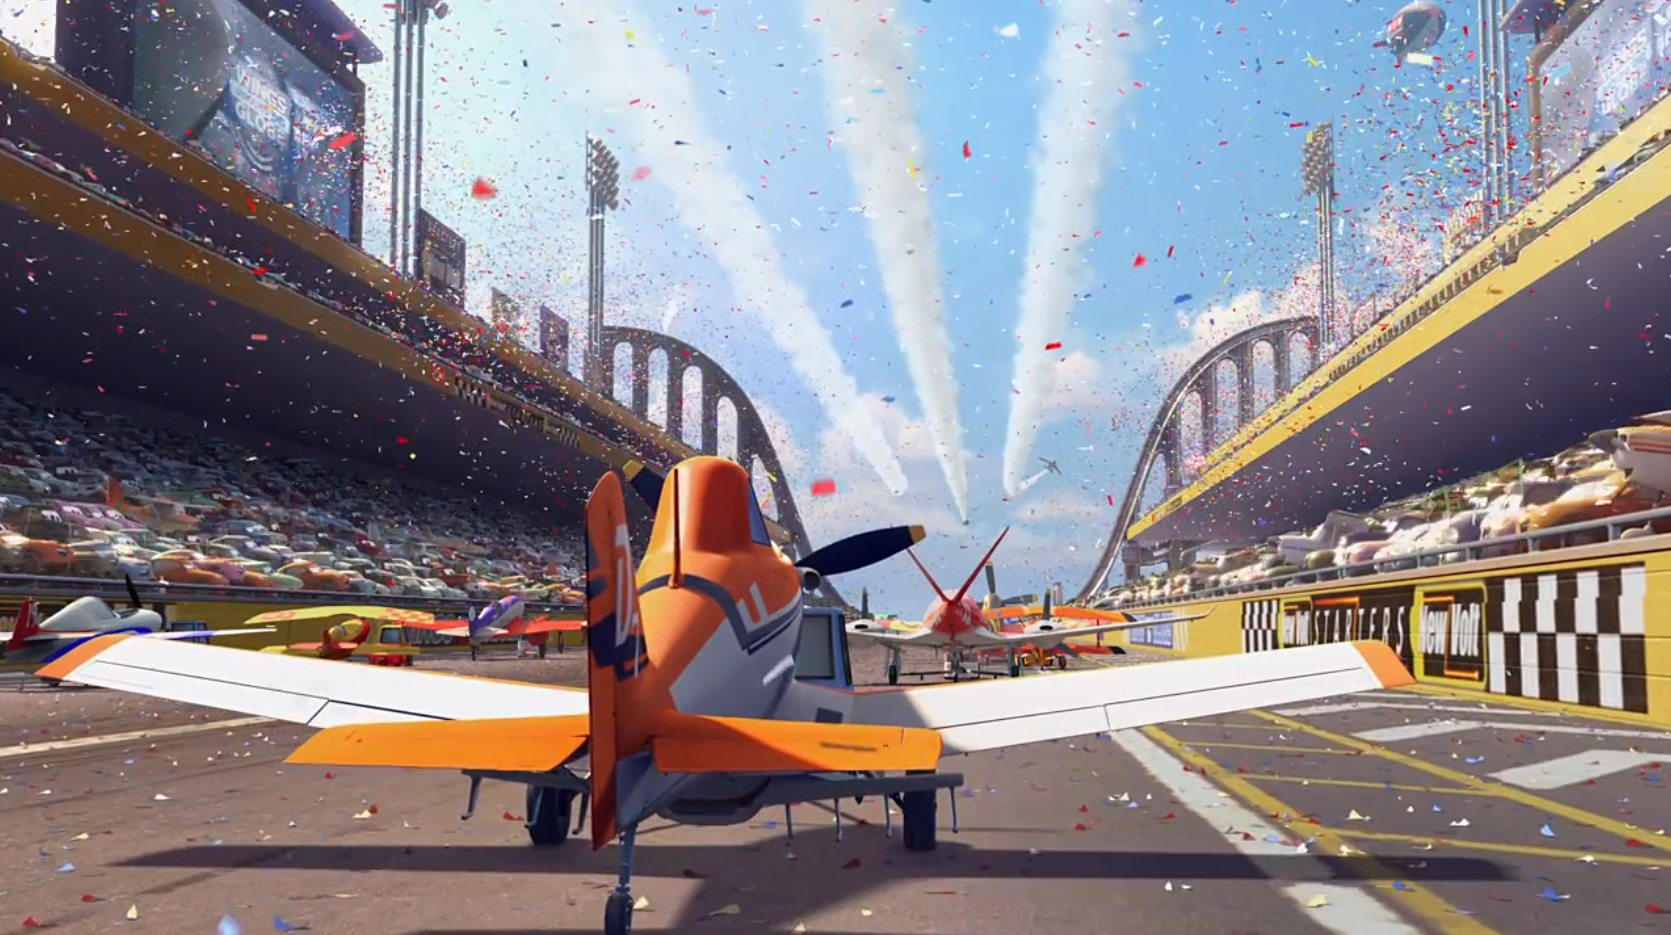 Does 'Planes' Fit Into the Pixar Theory?